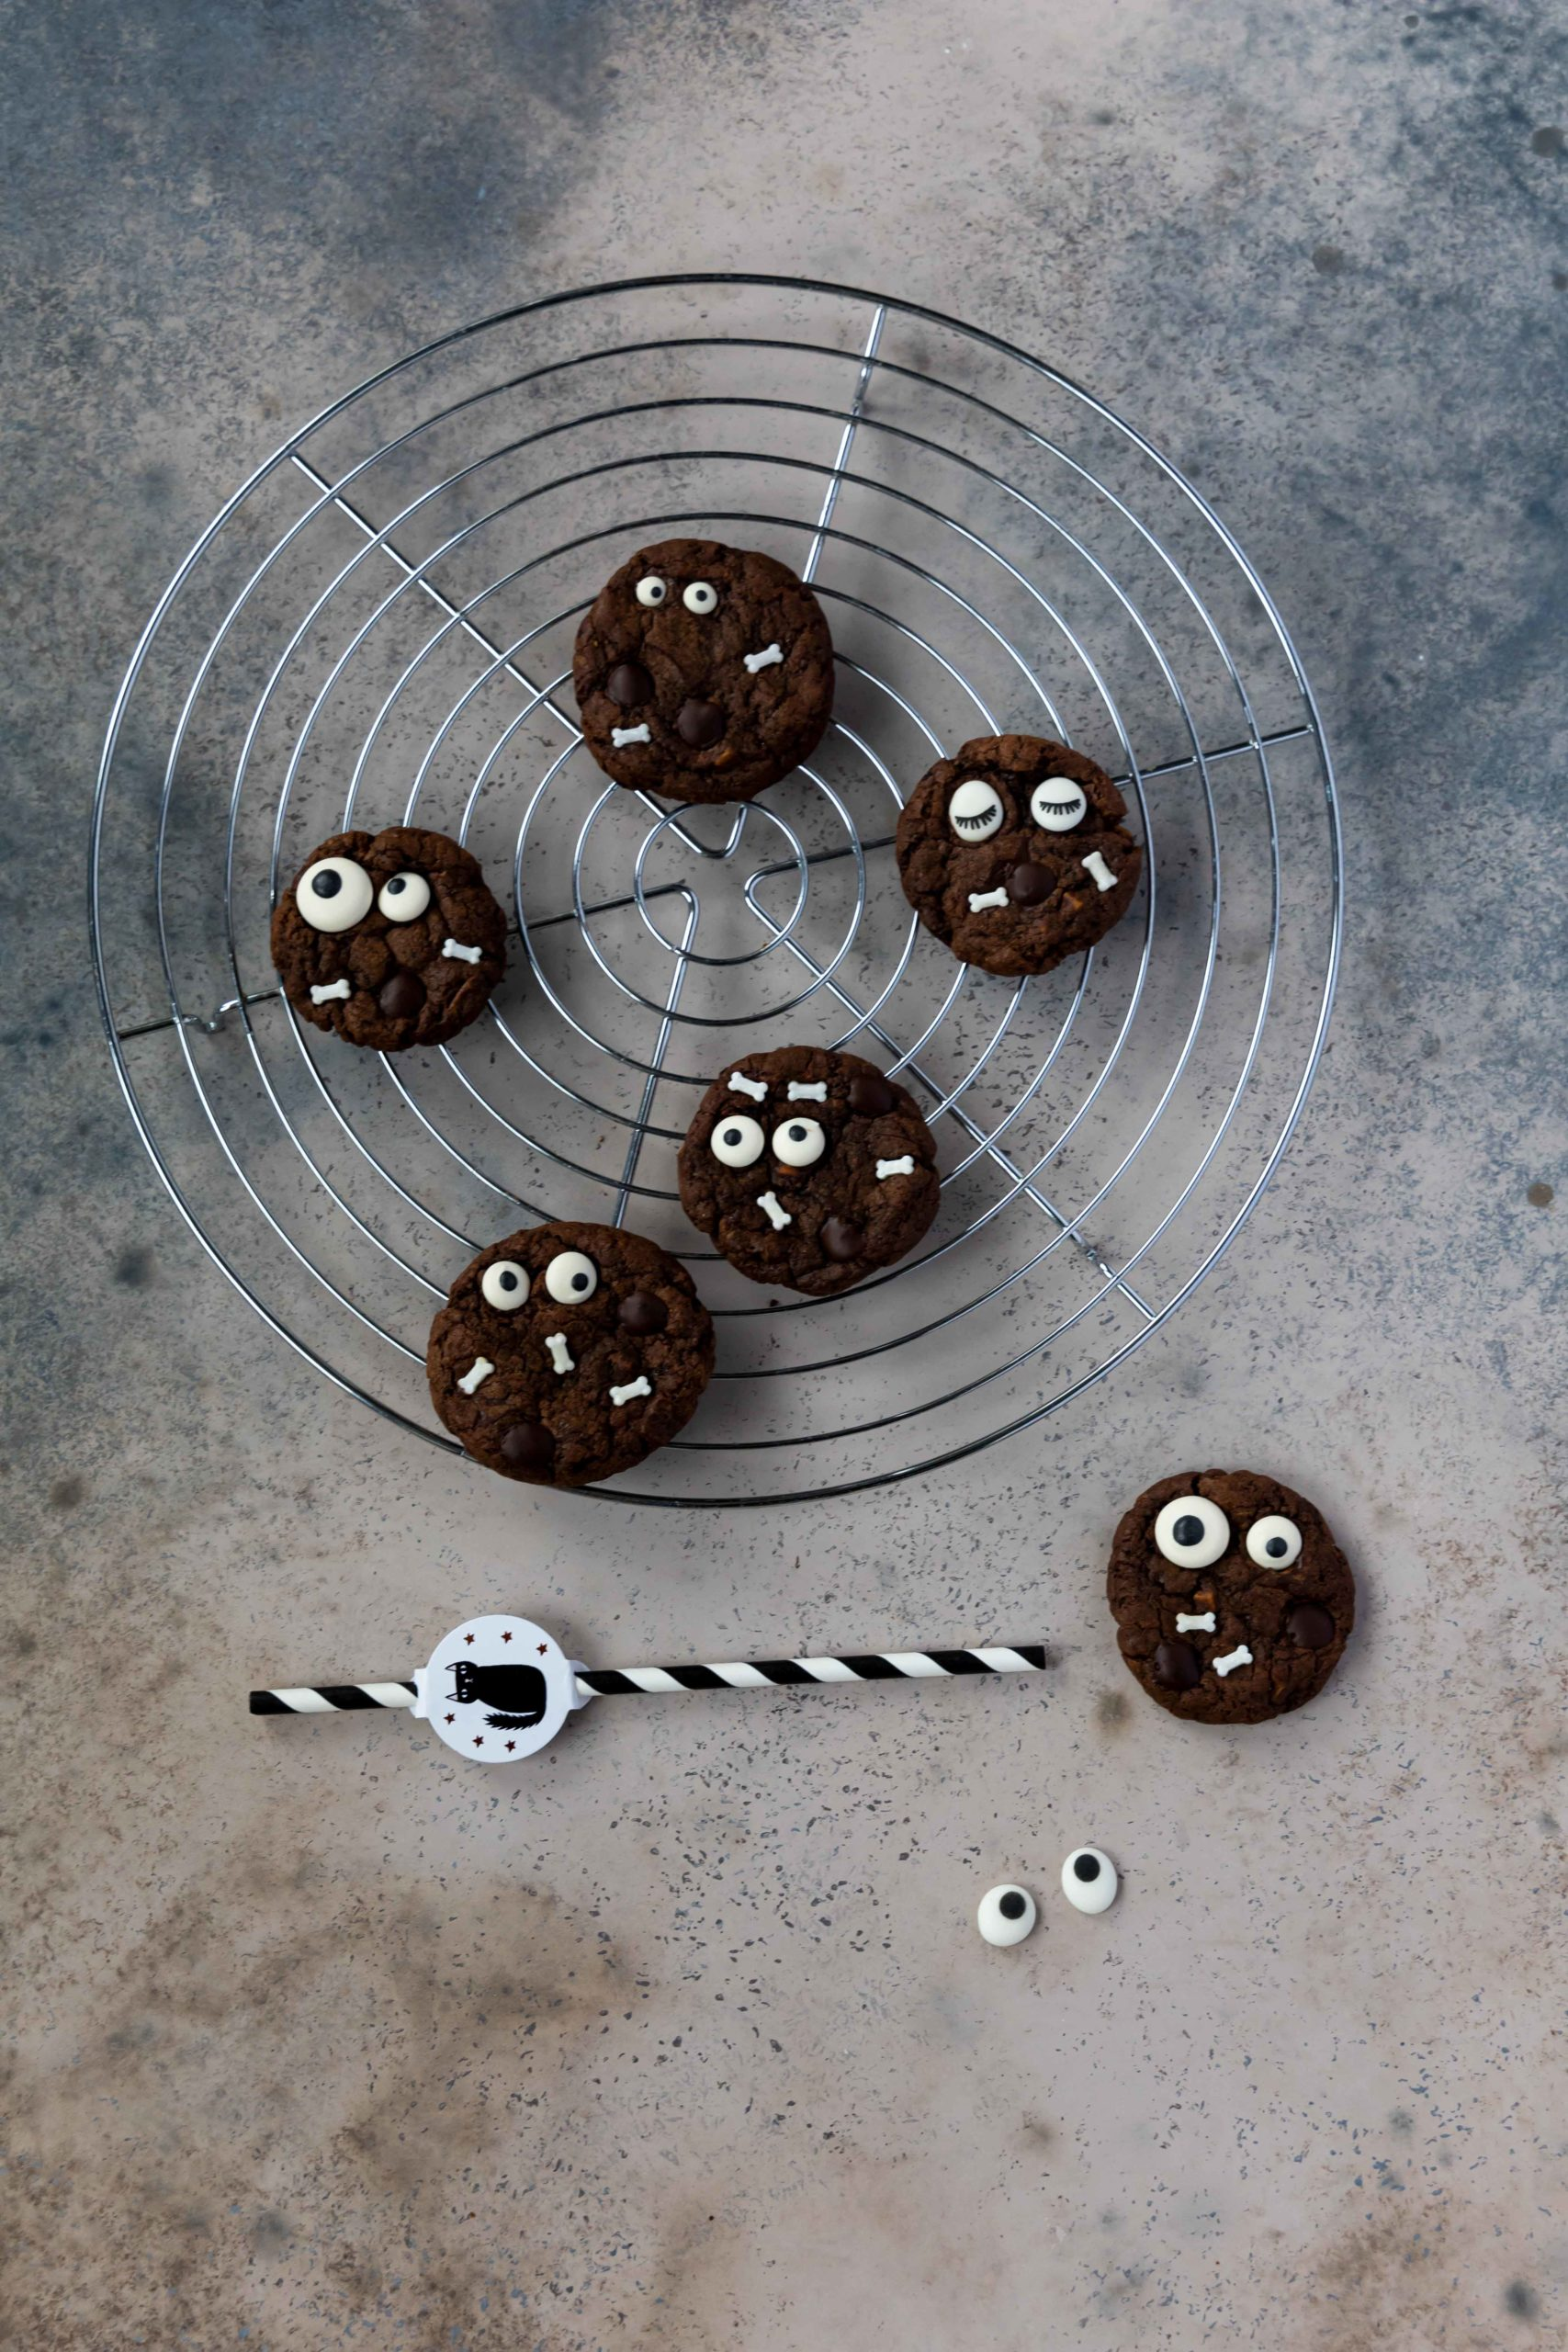 Halloween Schoko Cookies mit Zuckeraugen // Halloween Chocolate Cookies by https://babyrockmyday.com/halloween-schoko-cookies